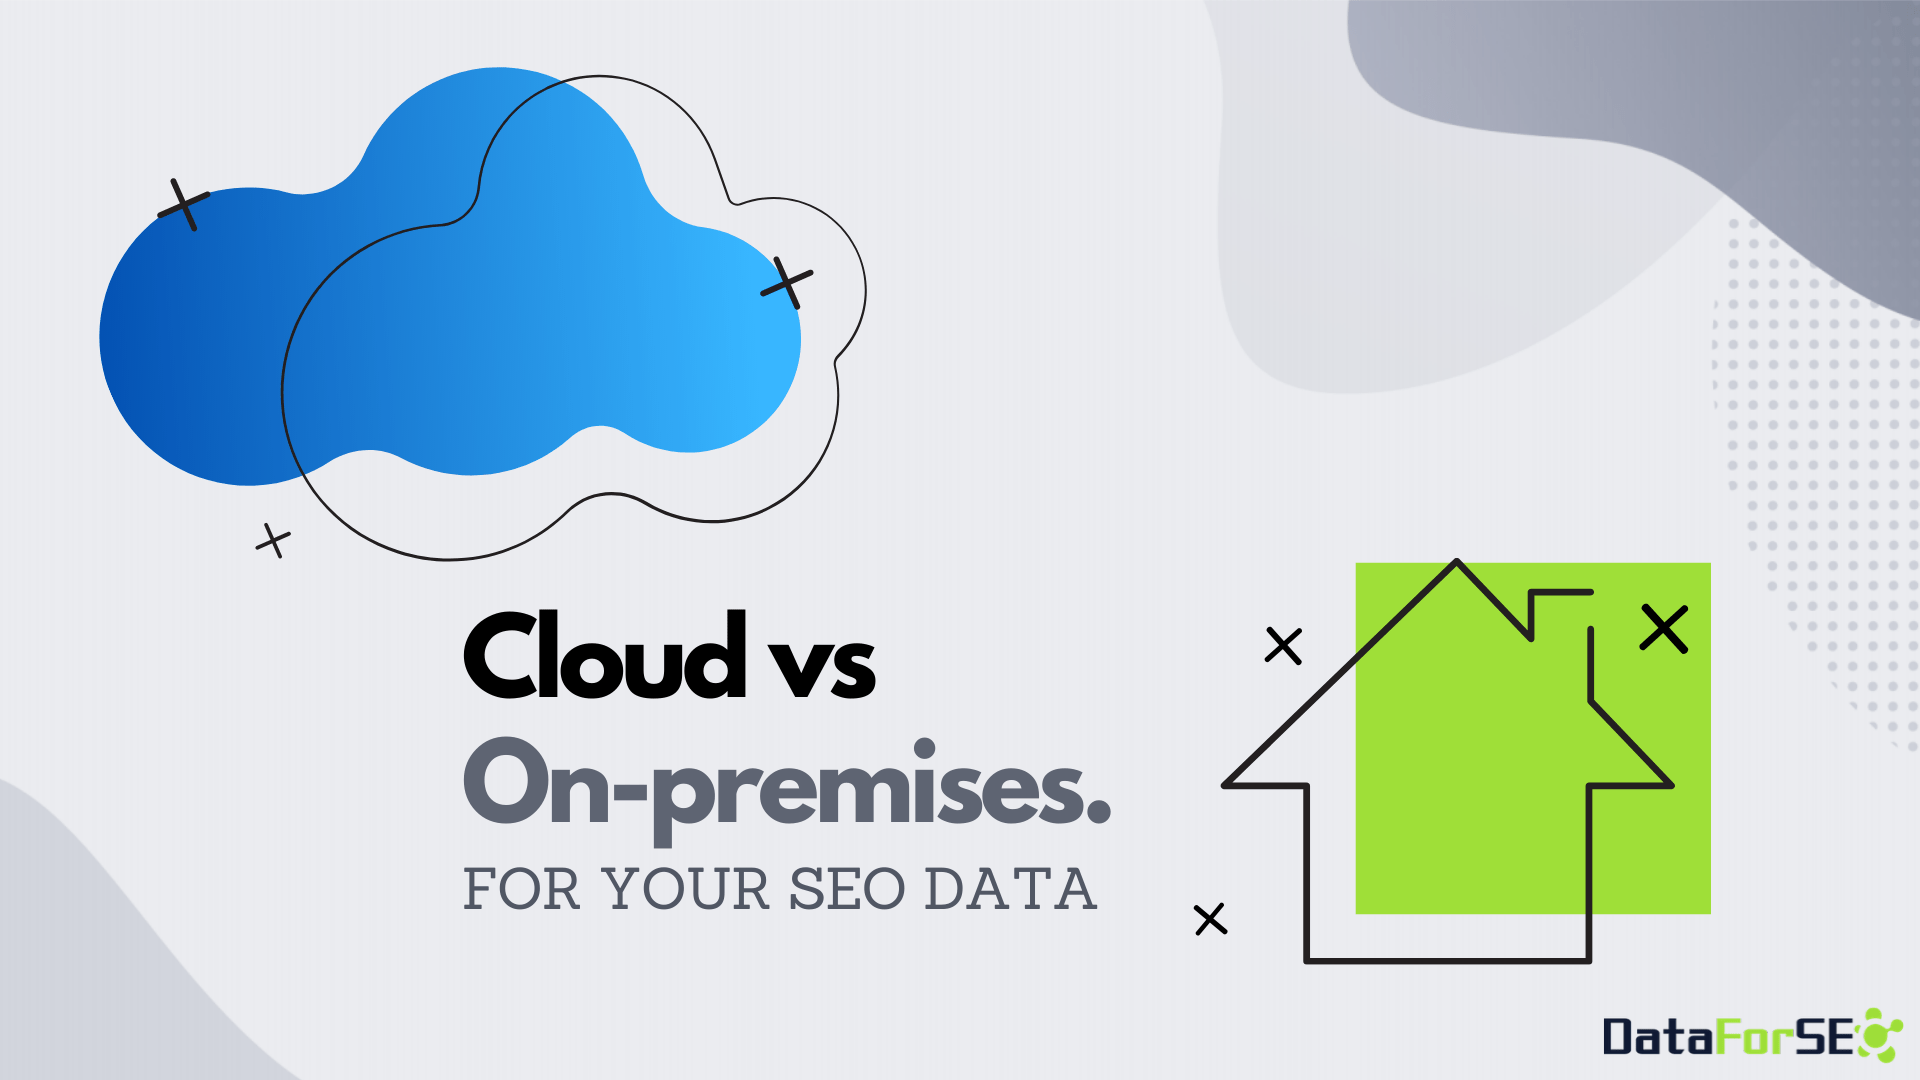 cloud vs on-premises for seo software